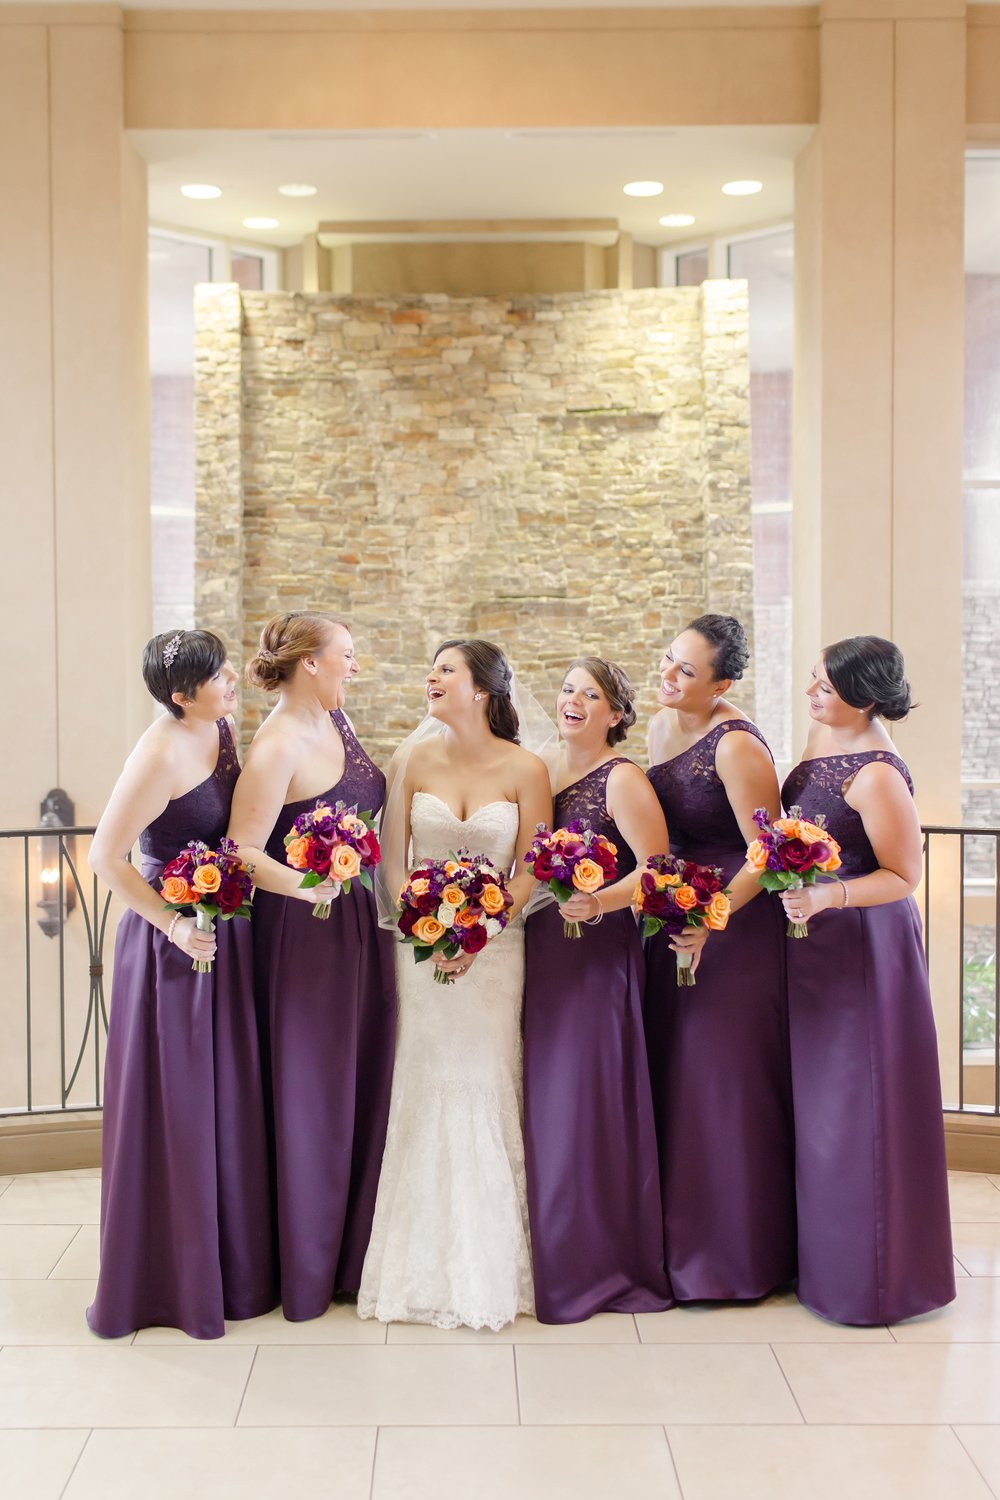 MacDonald 2. Bridal Party-302_anna grace photography leesburg virginia wedding photographer lansdowne resort wedding photo.jpg